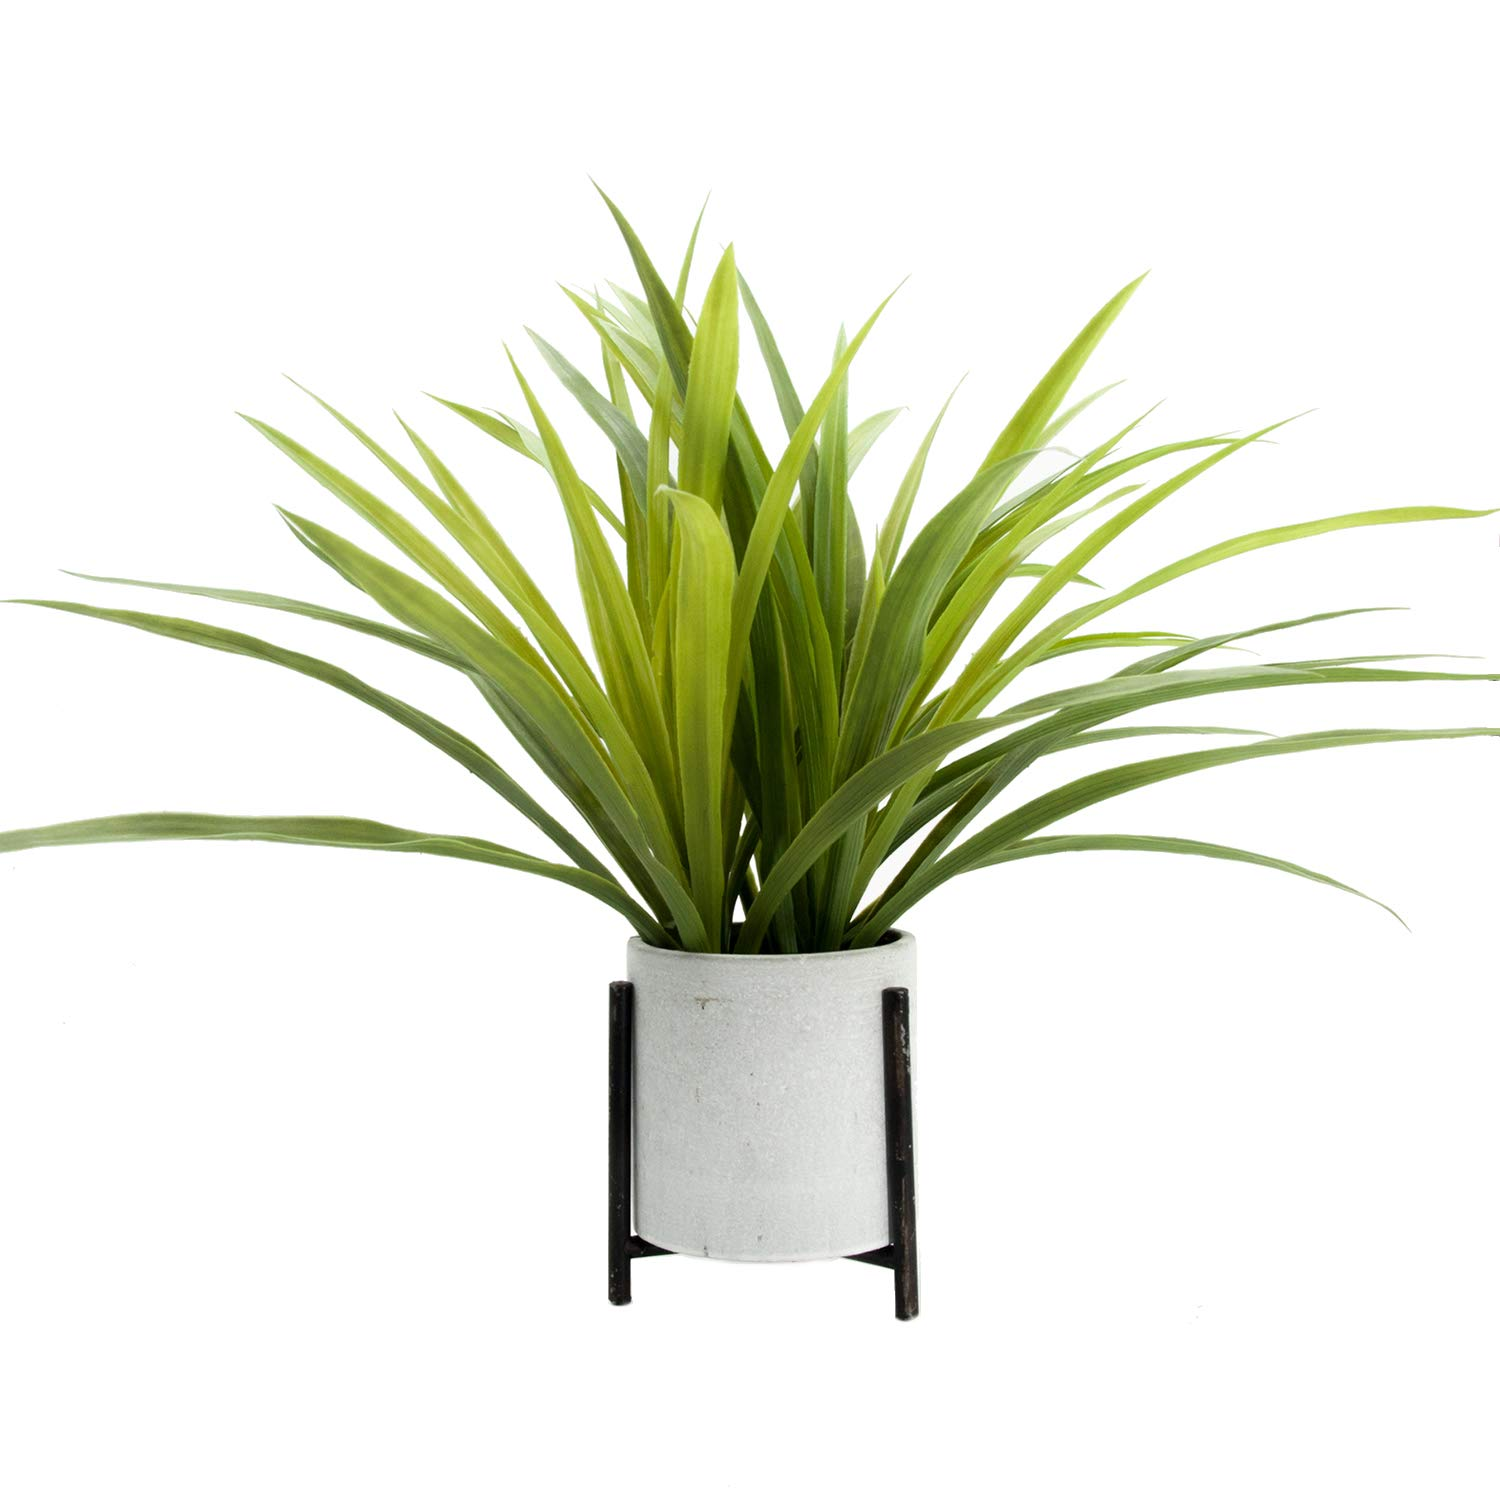 Velener Artificial Potted Long Leaf Plant with Metal Stand for Home Decor (Orchid Leaf) by velener